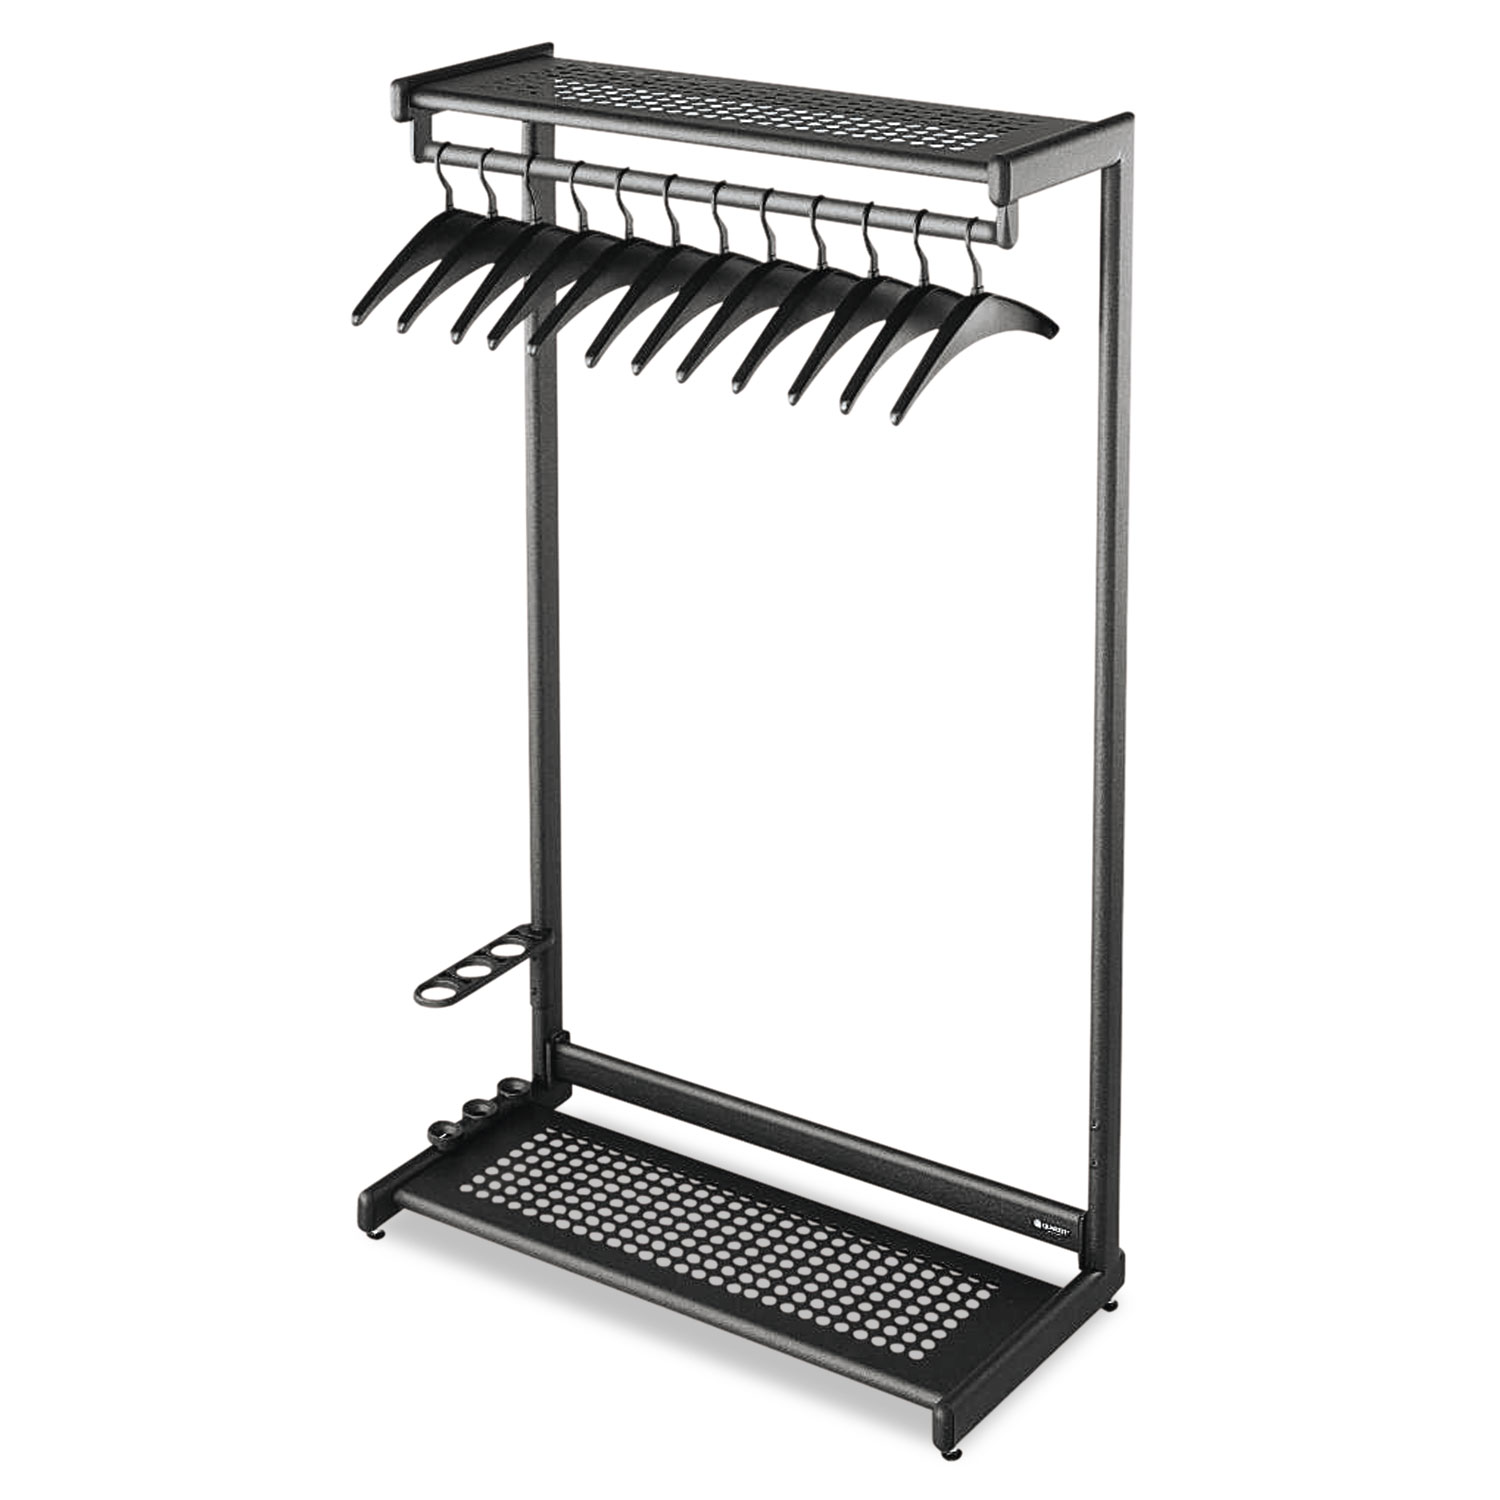 Single-Sided Rack w/Two Shelves, 12 Hangers, Steel, 48w x 18.5d x 61.5h, Black